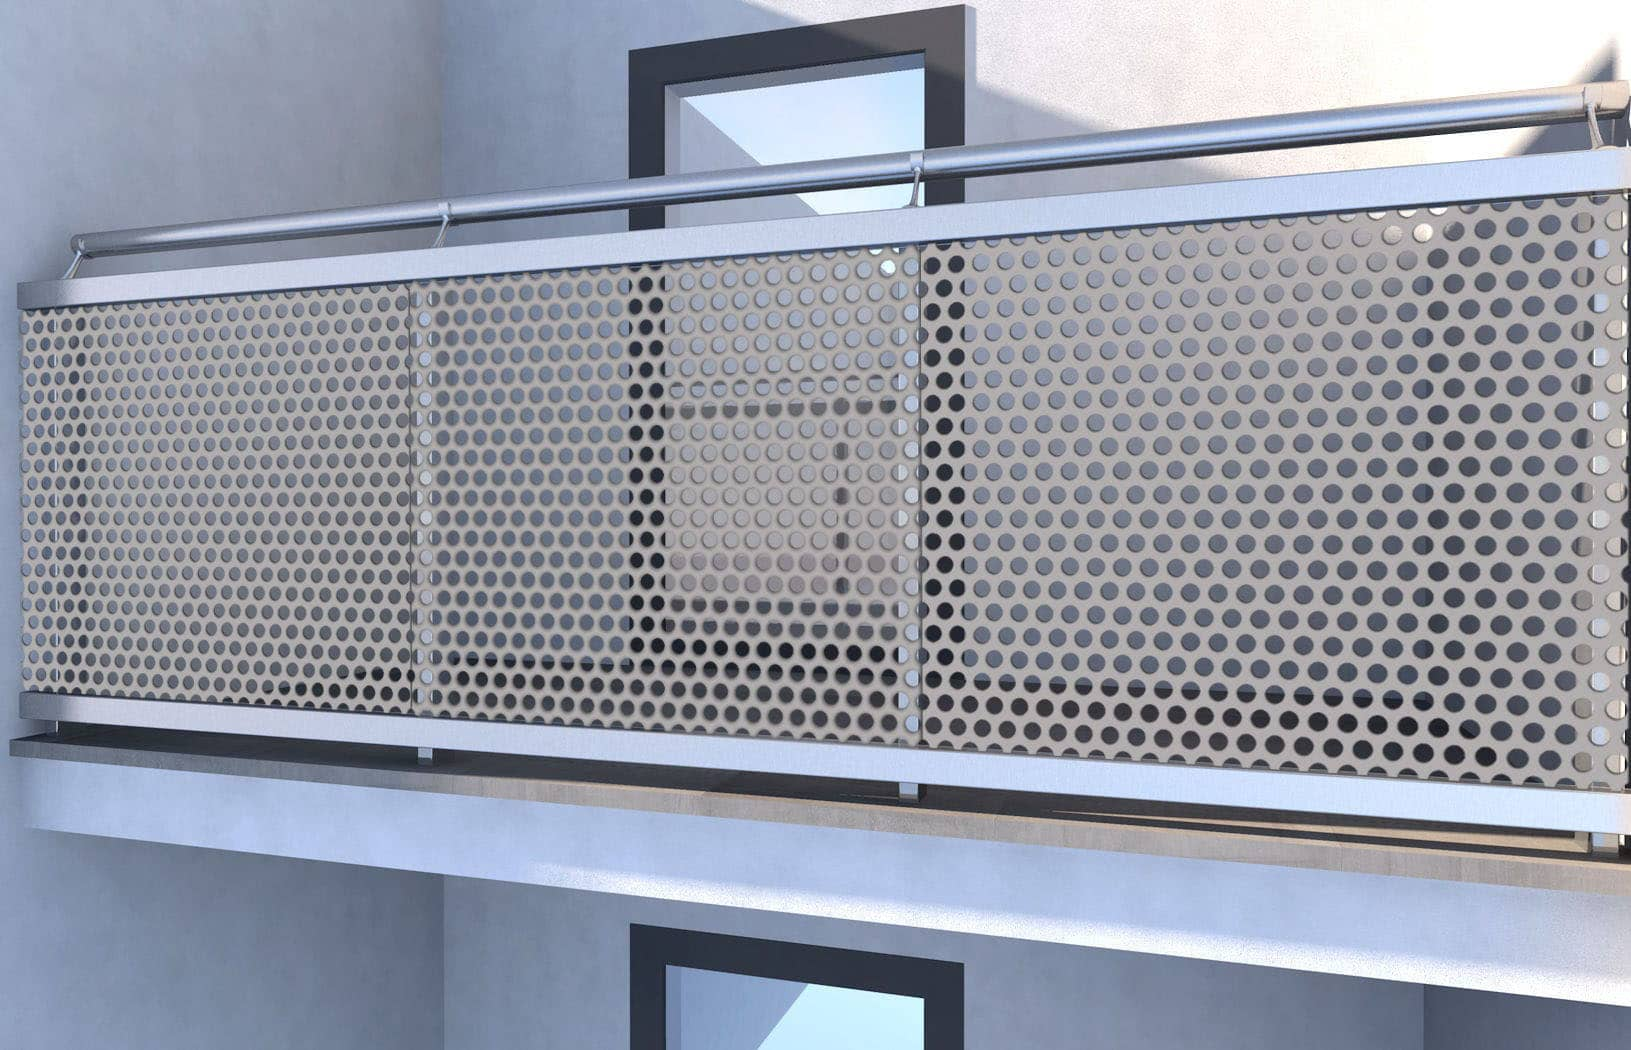 Perforated Metal Balustrade